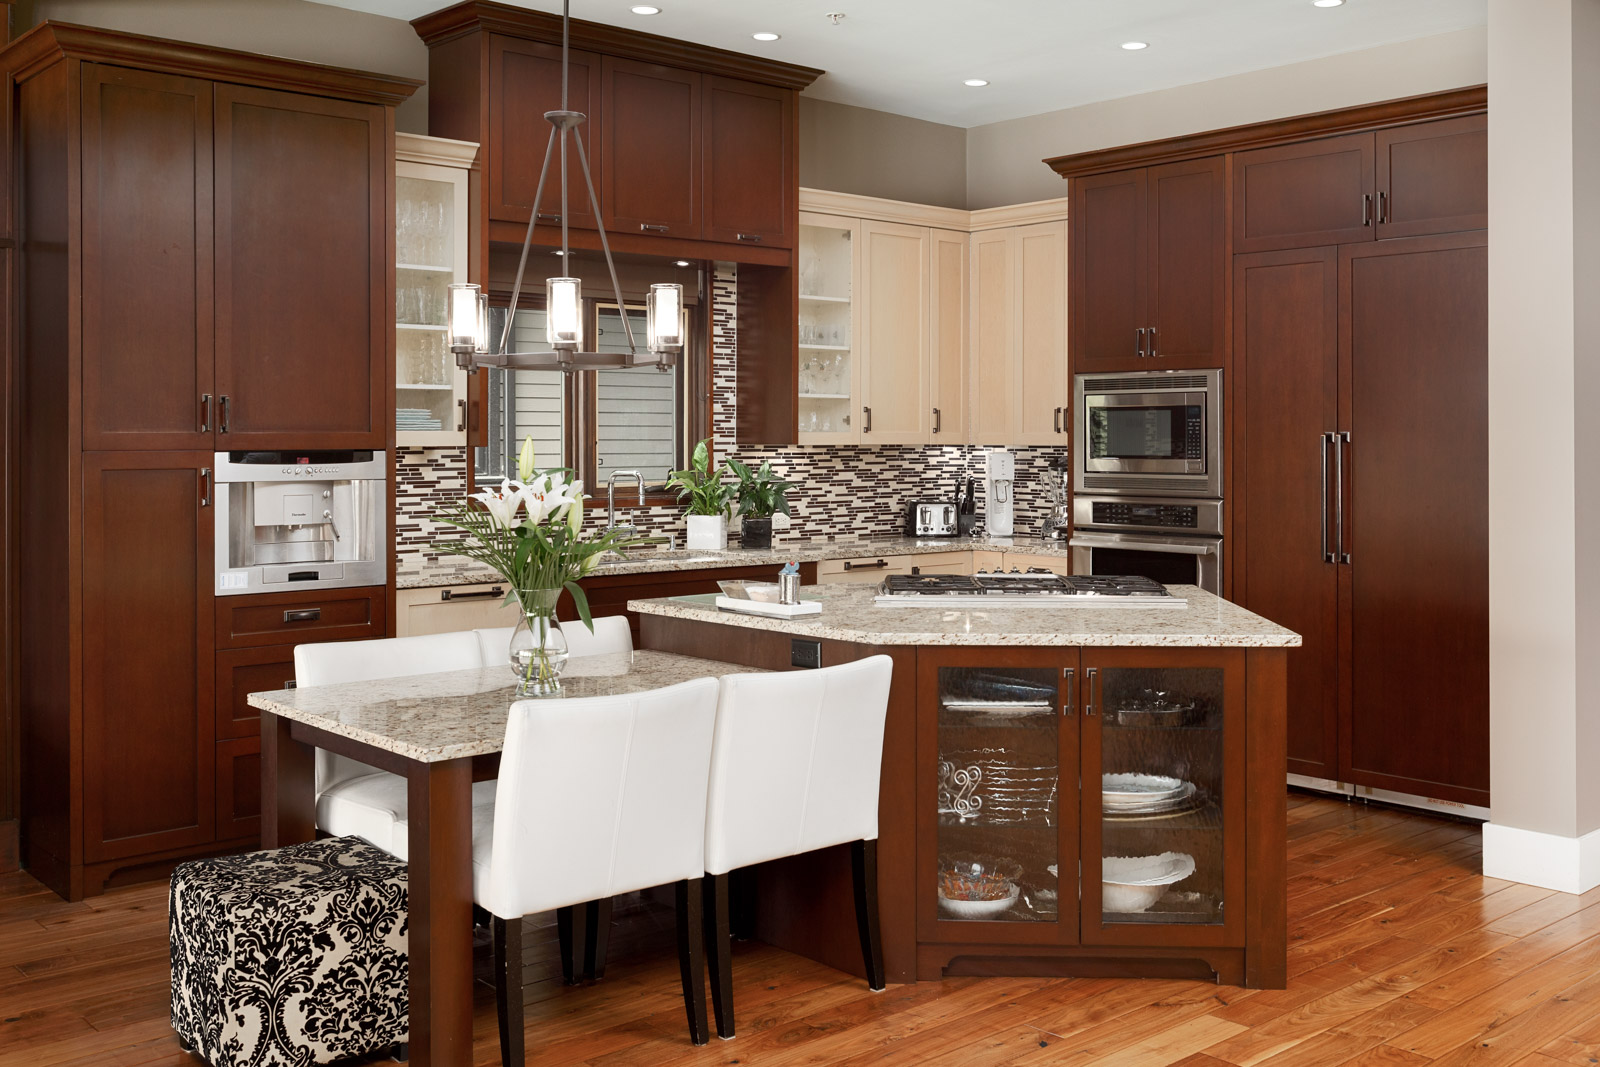 High-end kitchen with breakfast bar